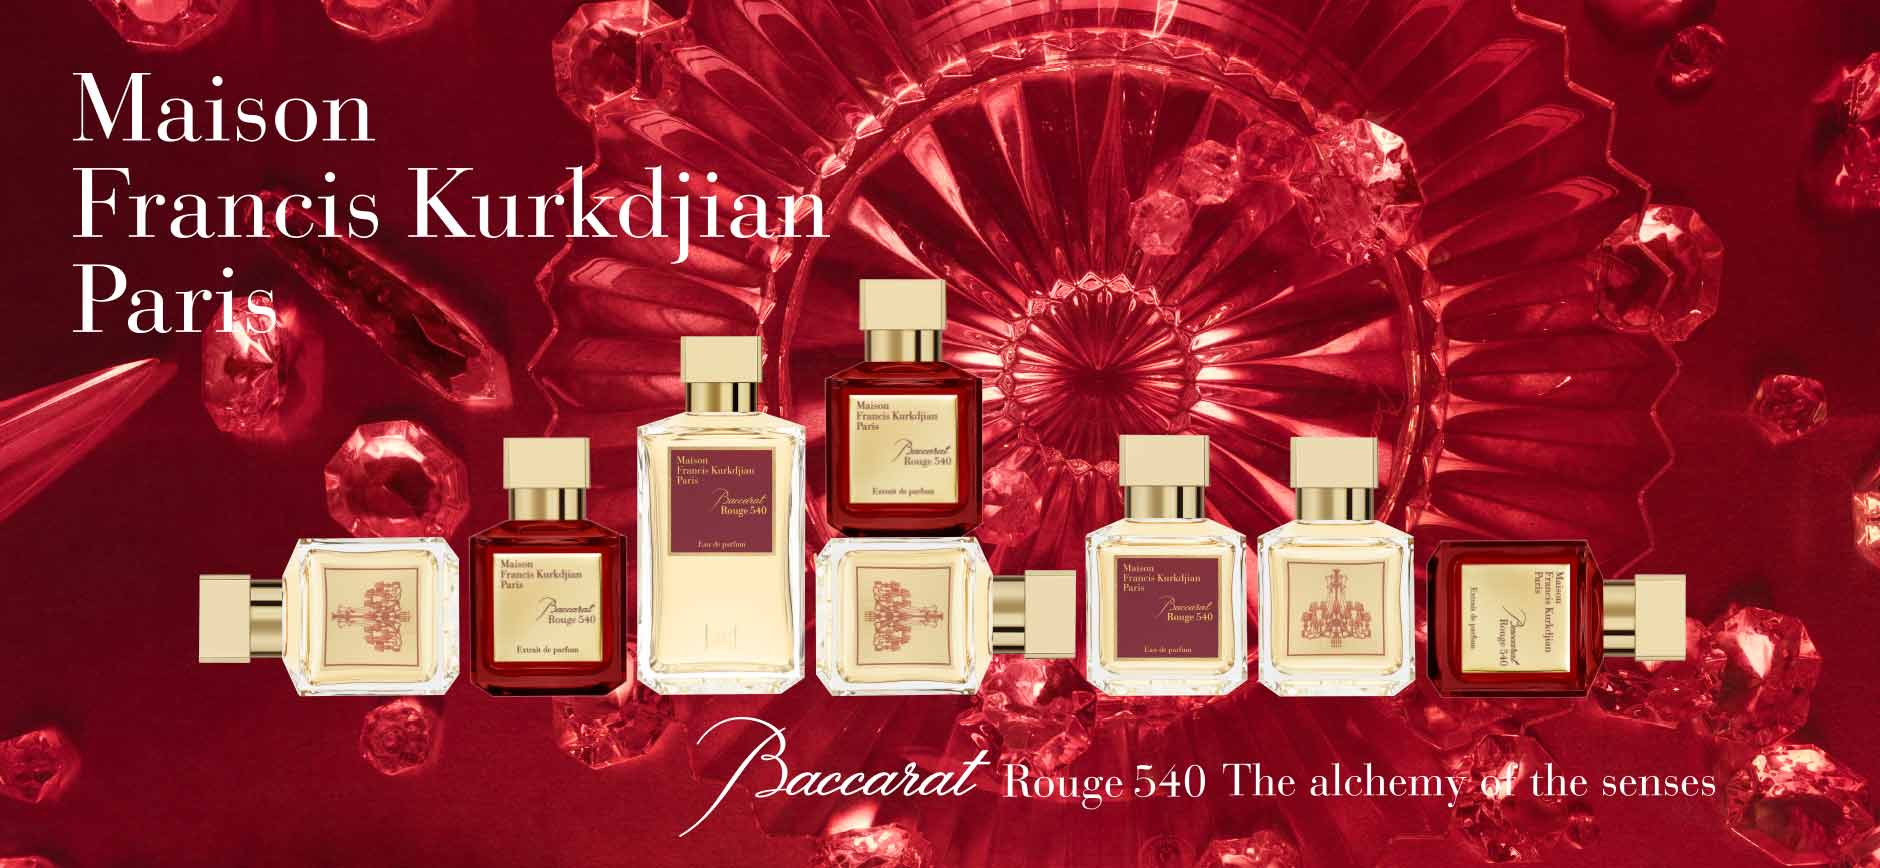 Maison Francis Kurkdjian Paris: Baccarat Rouge 540 The alchemy of the senses